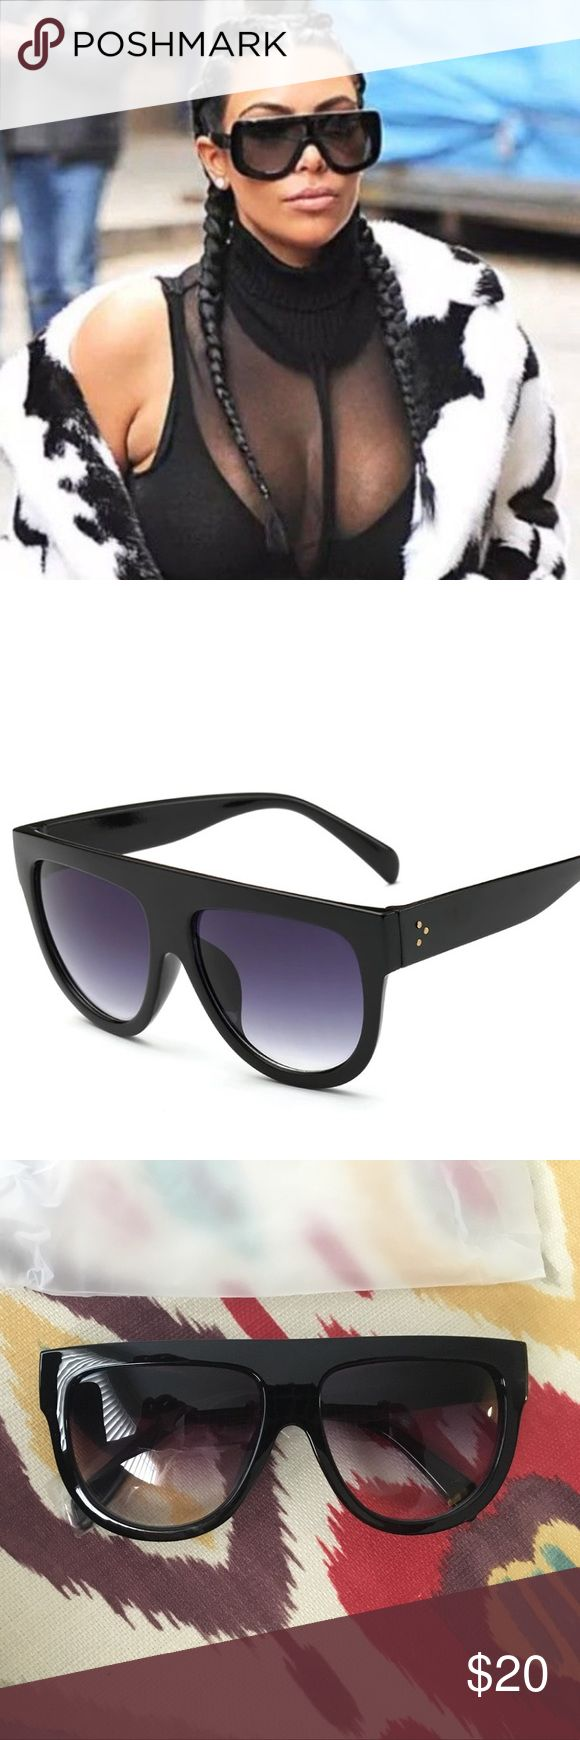 NEW flat front black Luxury sunglasses UV400 2017 Sunglasses worn by many Celebrities boutique Accessories Sunglasses